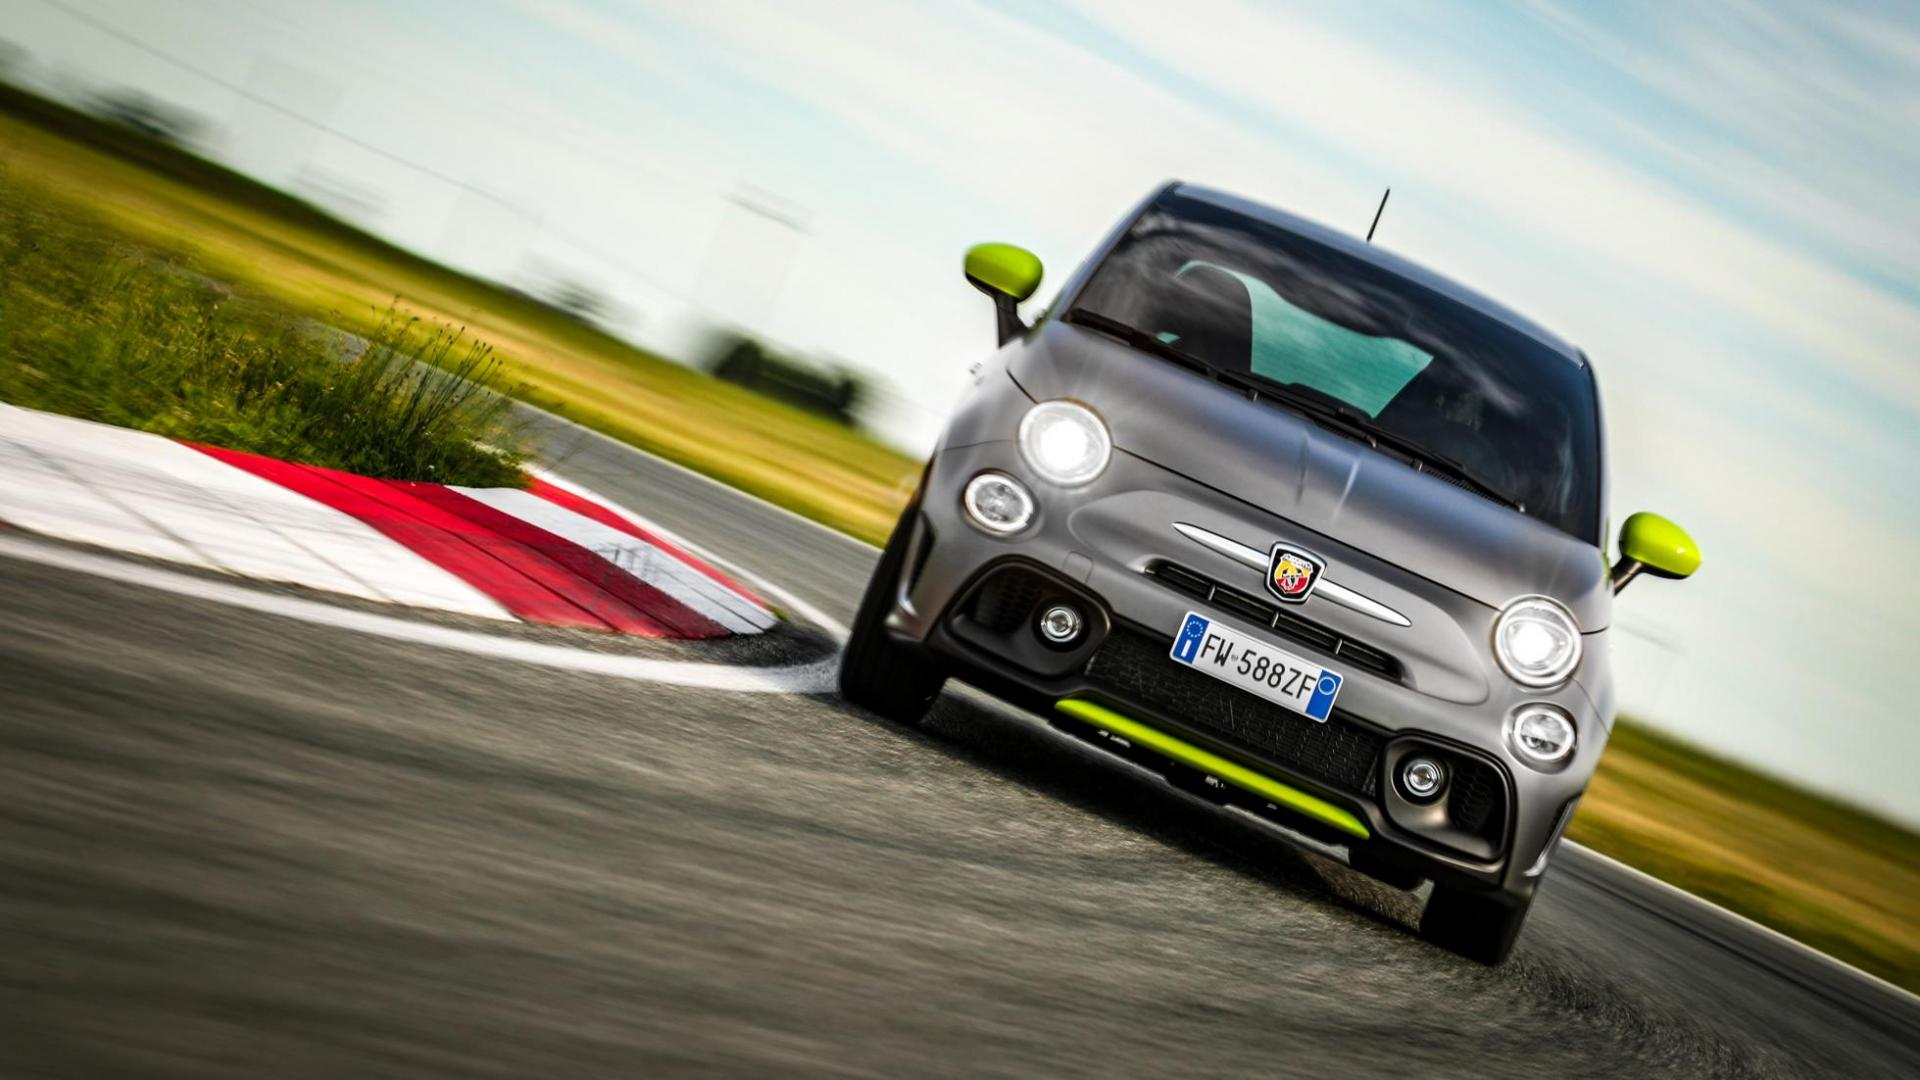 Abarth 595 Pista voor in bocht